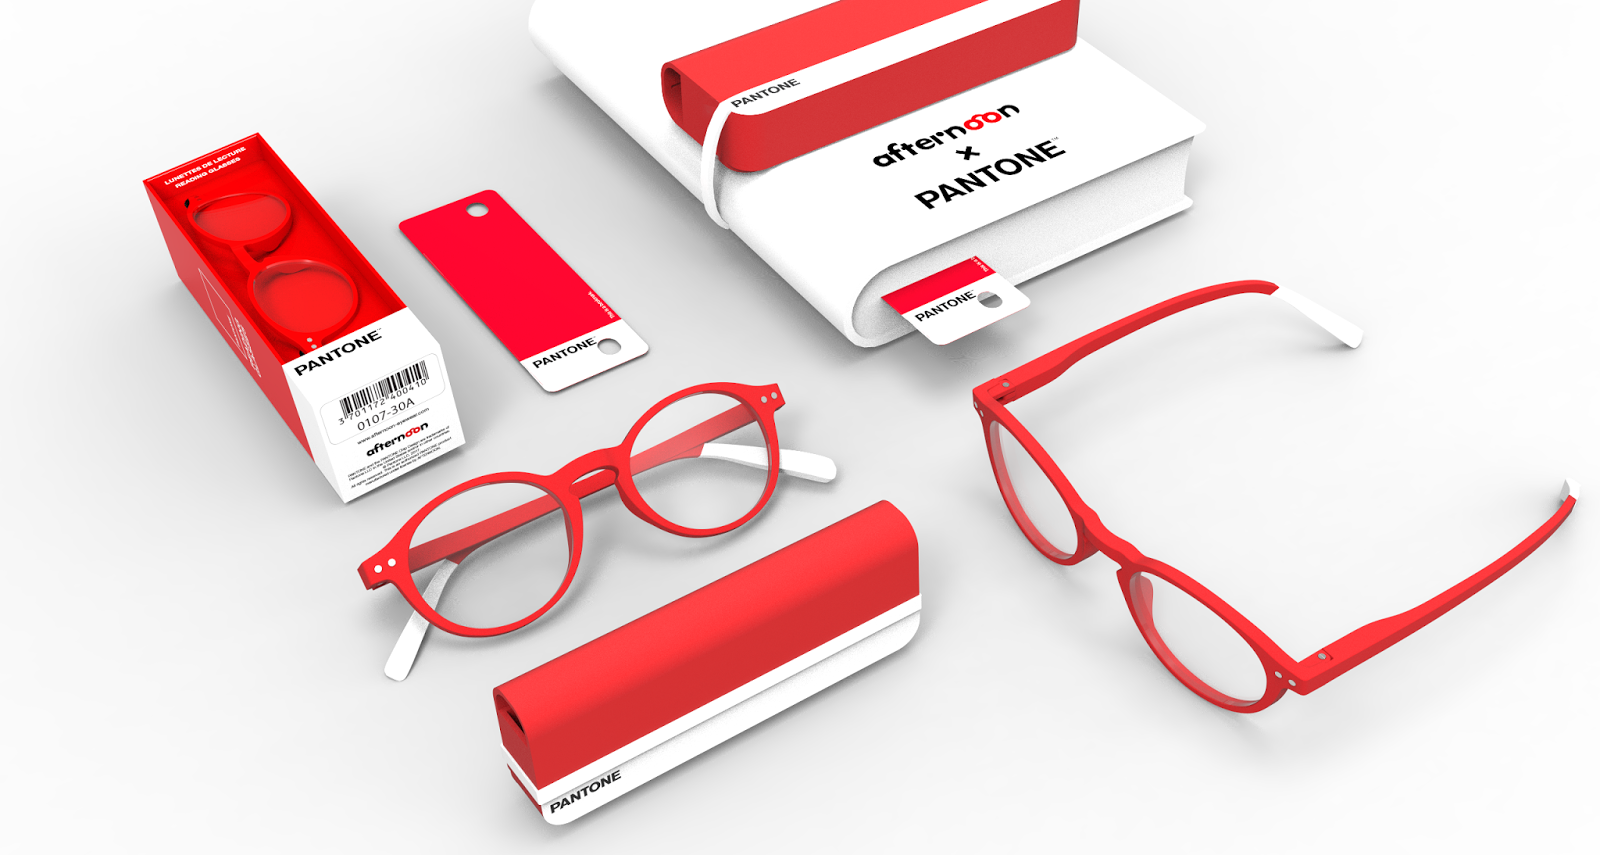 PANTONE Reading Glasses on Packaging of the World